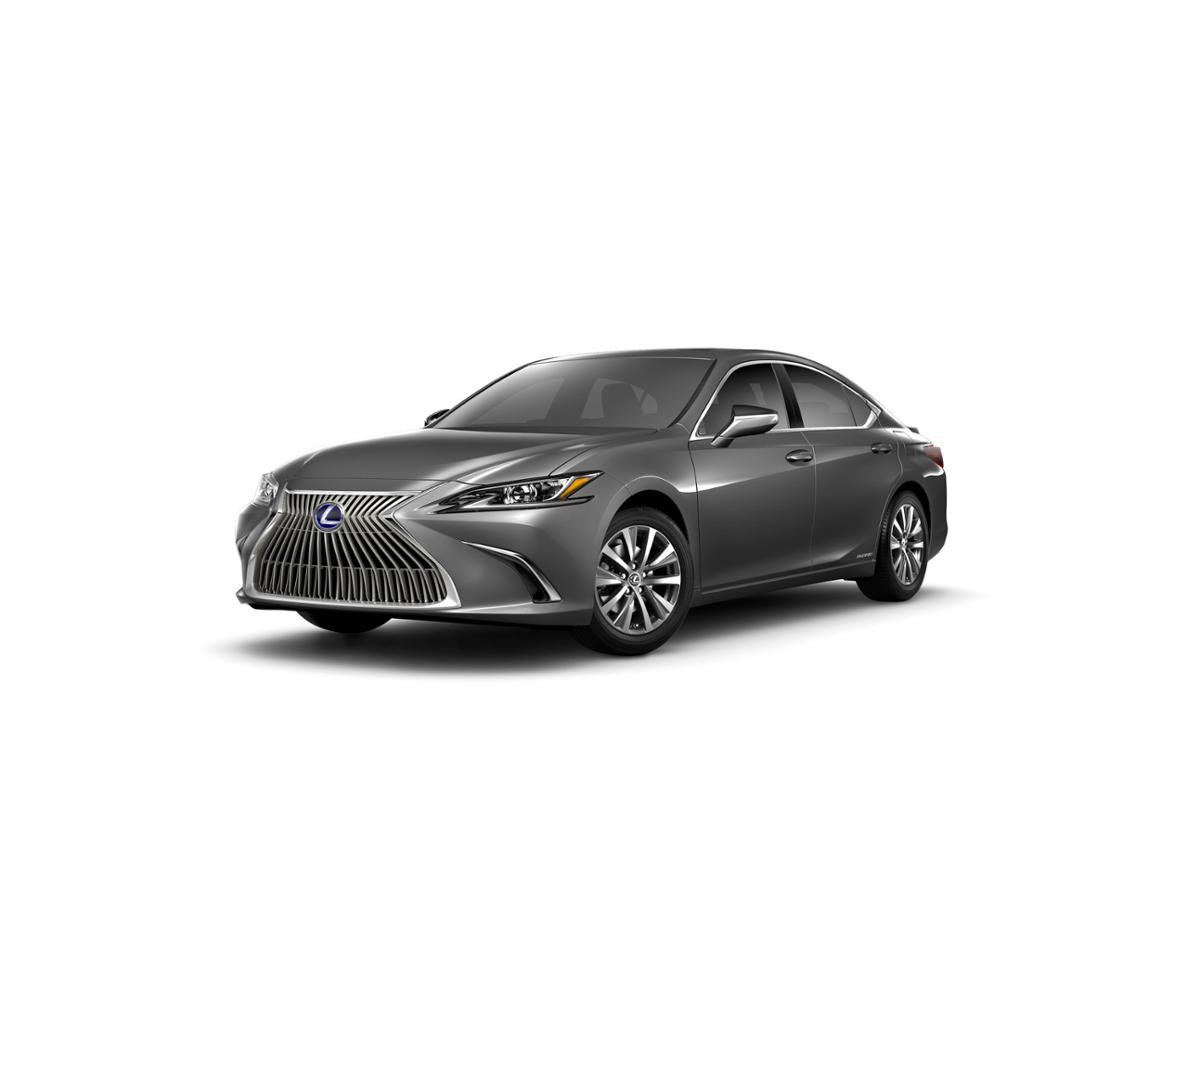 2019 Lexus ES 300h Vehicle Photo in Charlotte, NC 28212